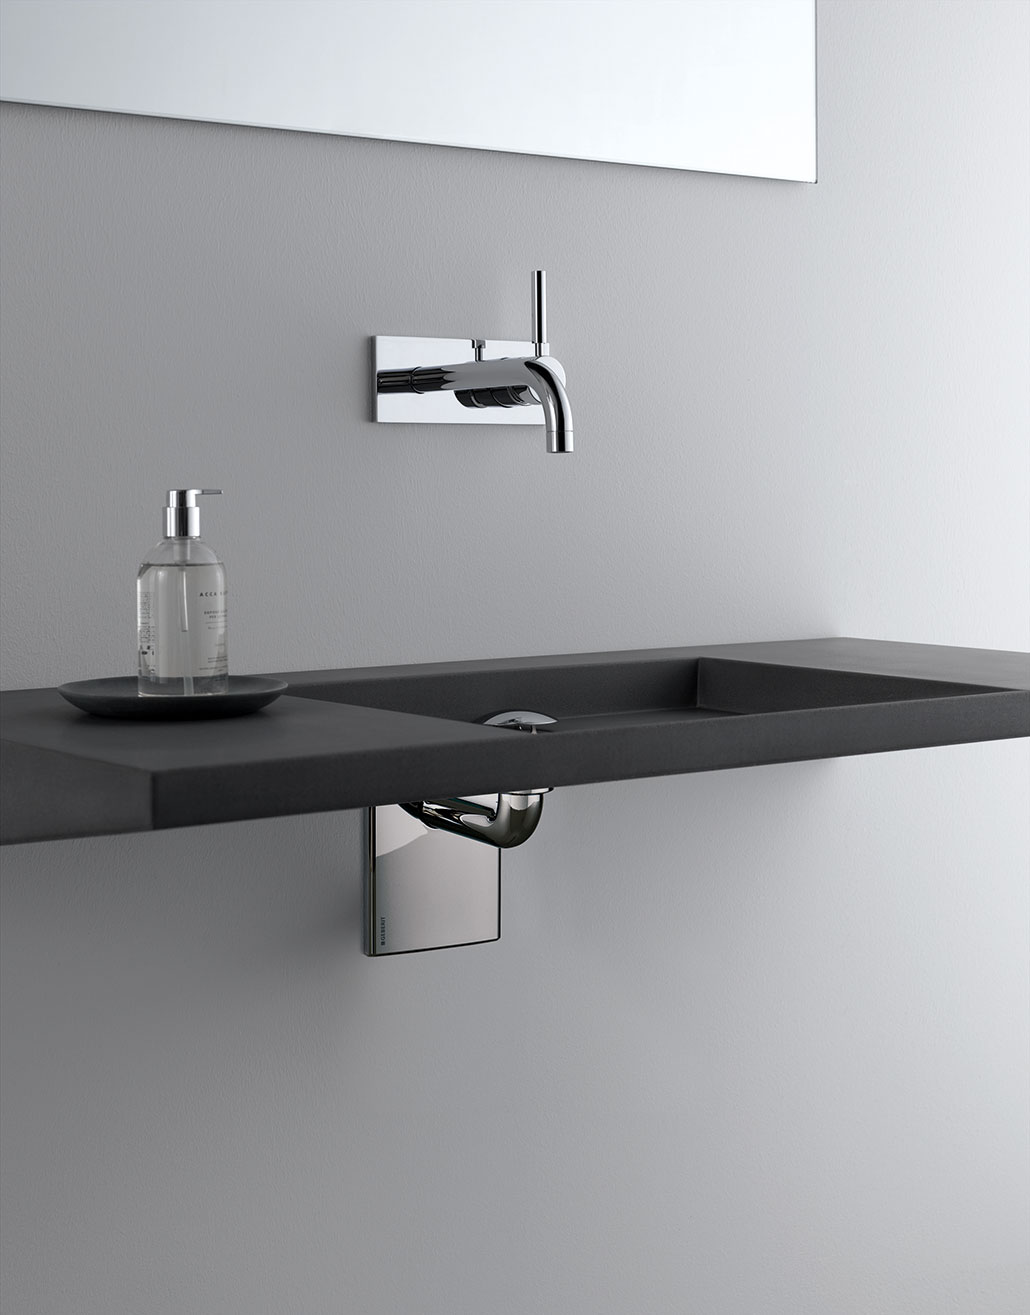 ... Geberit In Wall Lavatory Sink System With ADA Wall Mounted Sink